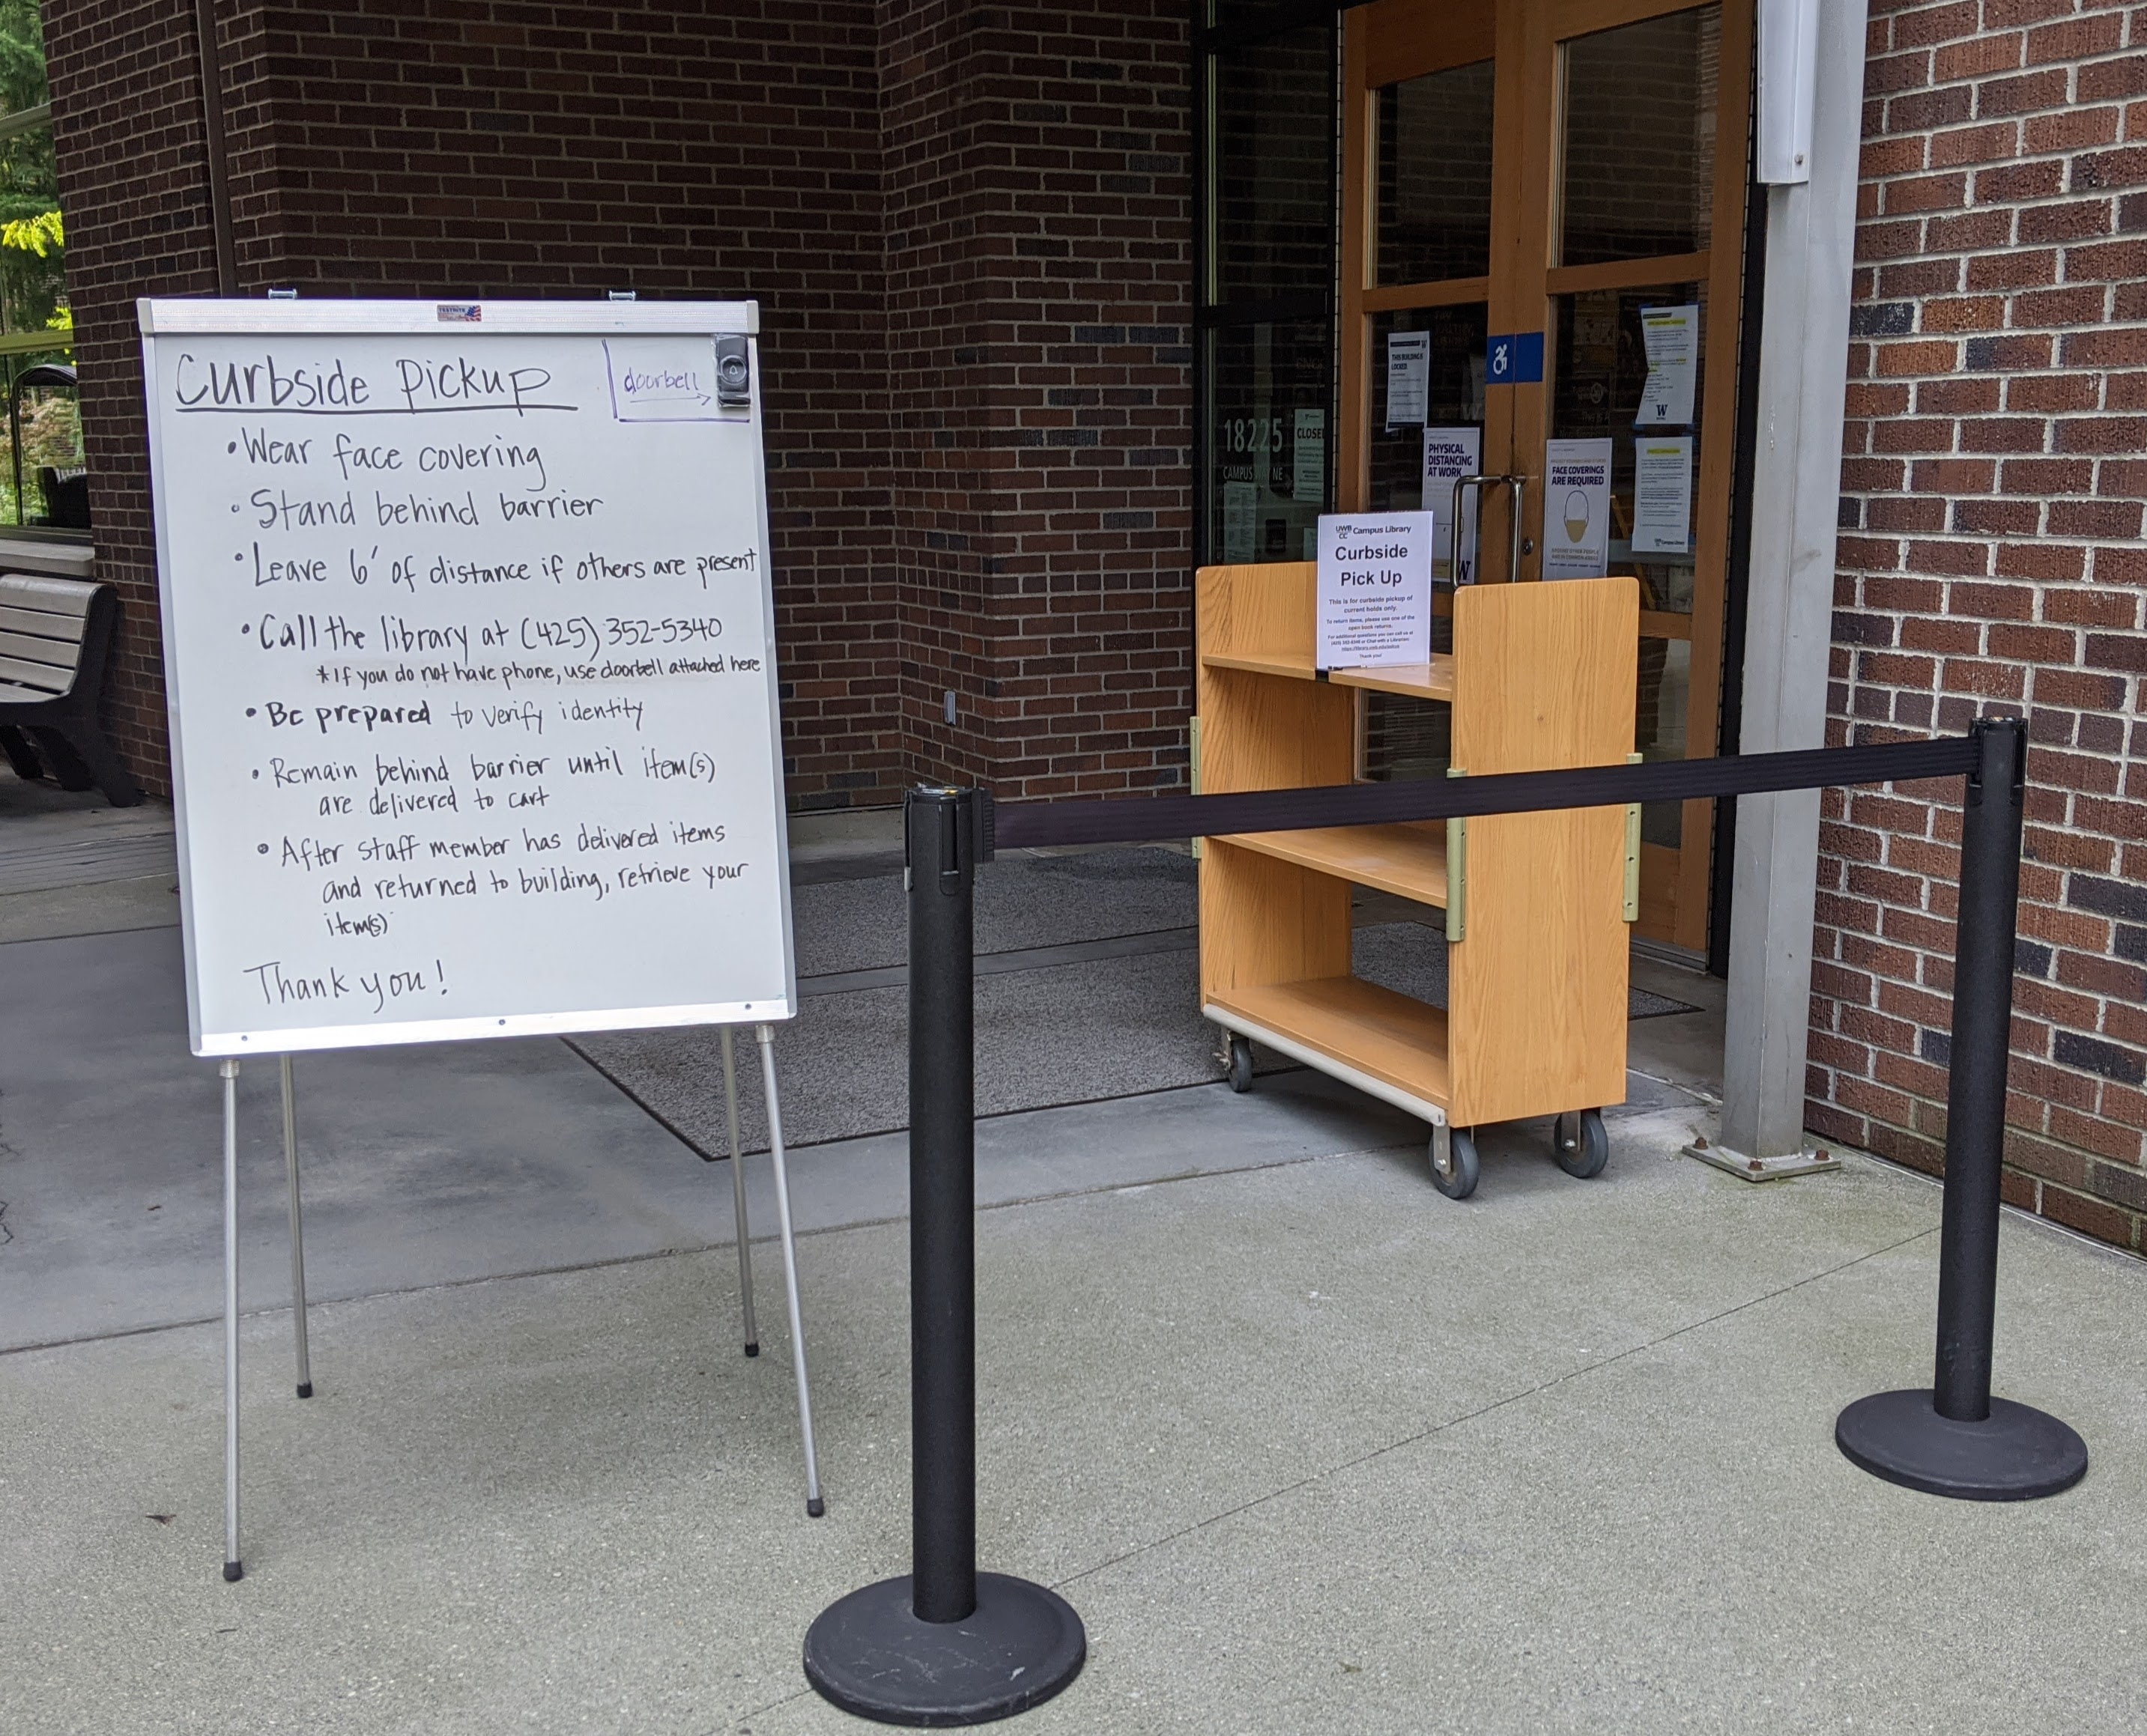 photograph of rolling cart, sign, and barrier outside library doors for contact-free pickup